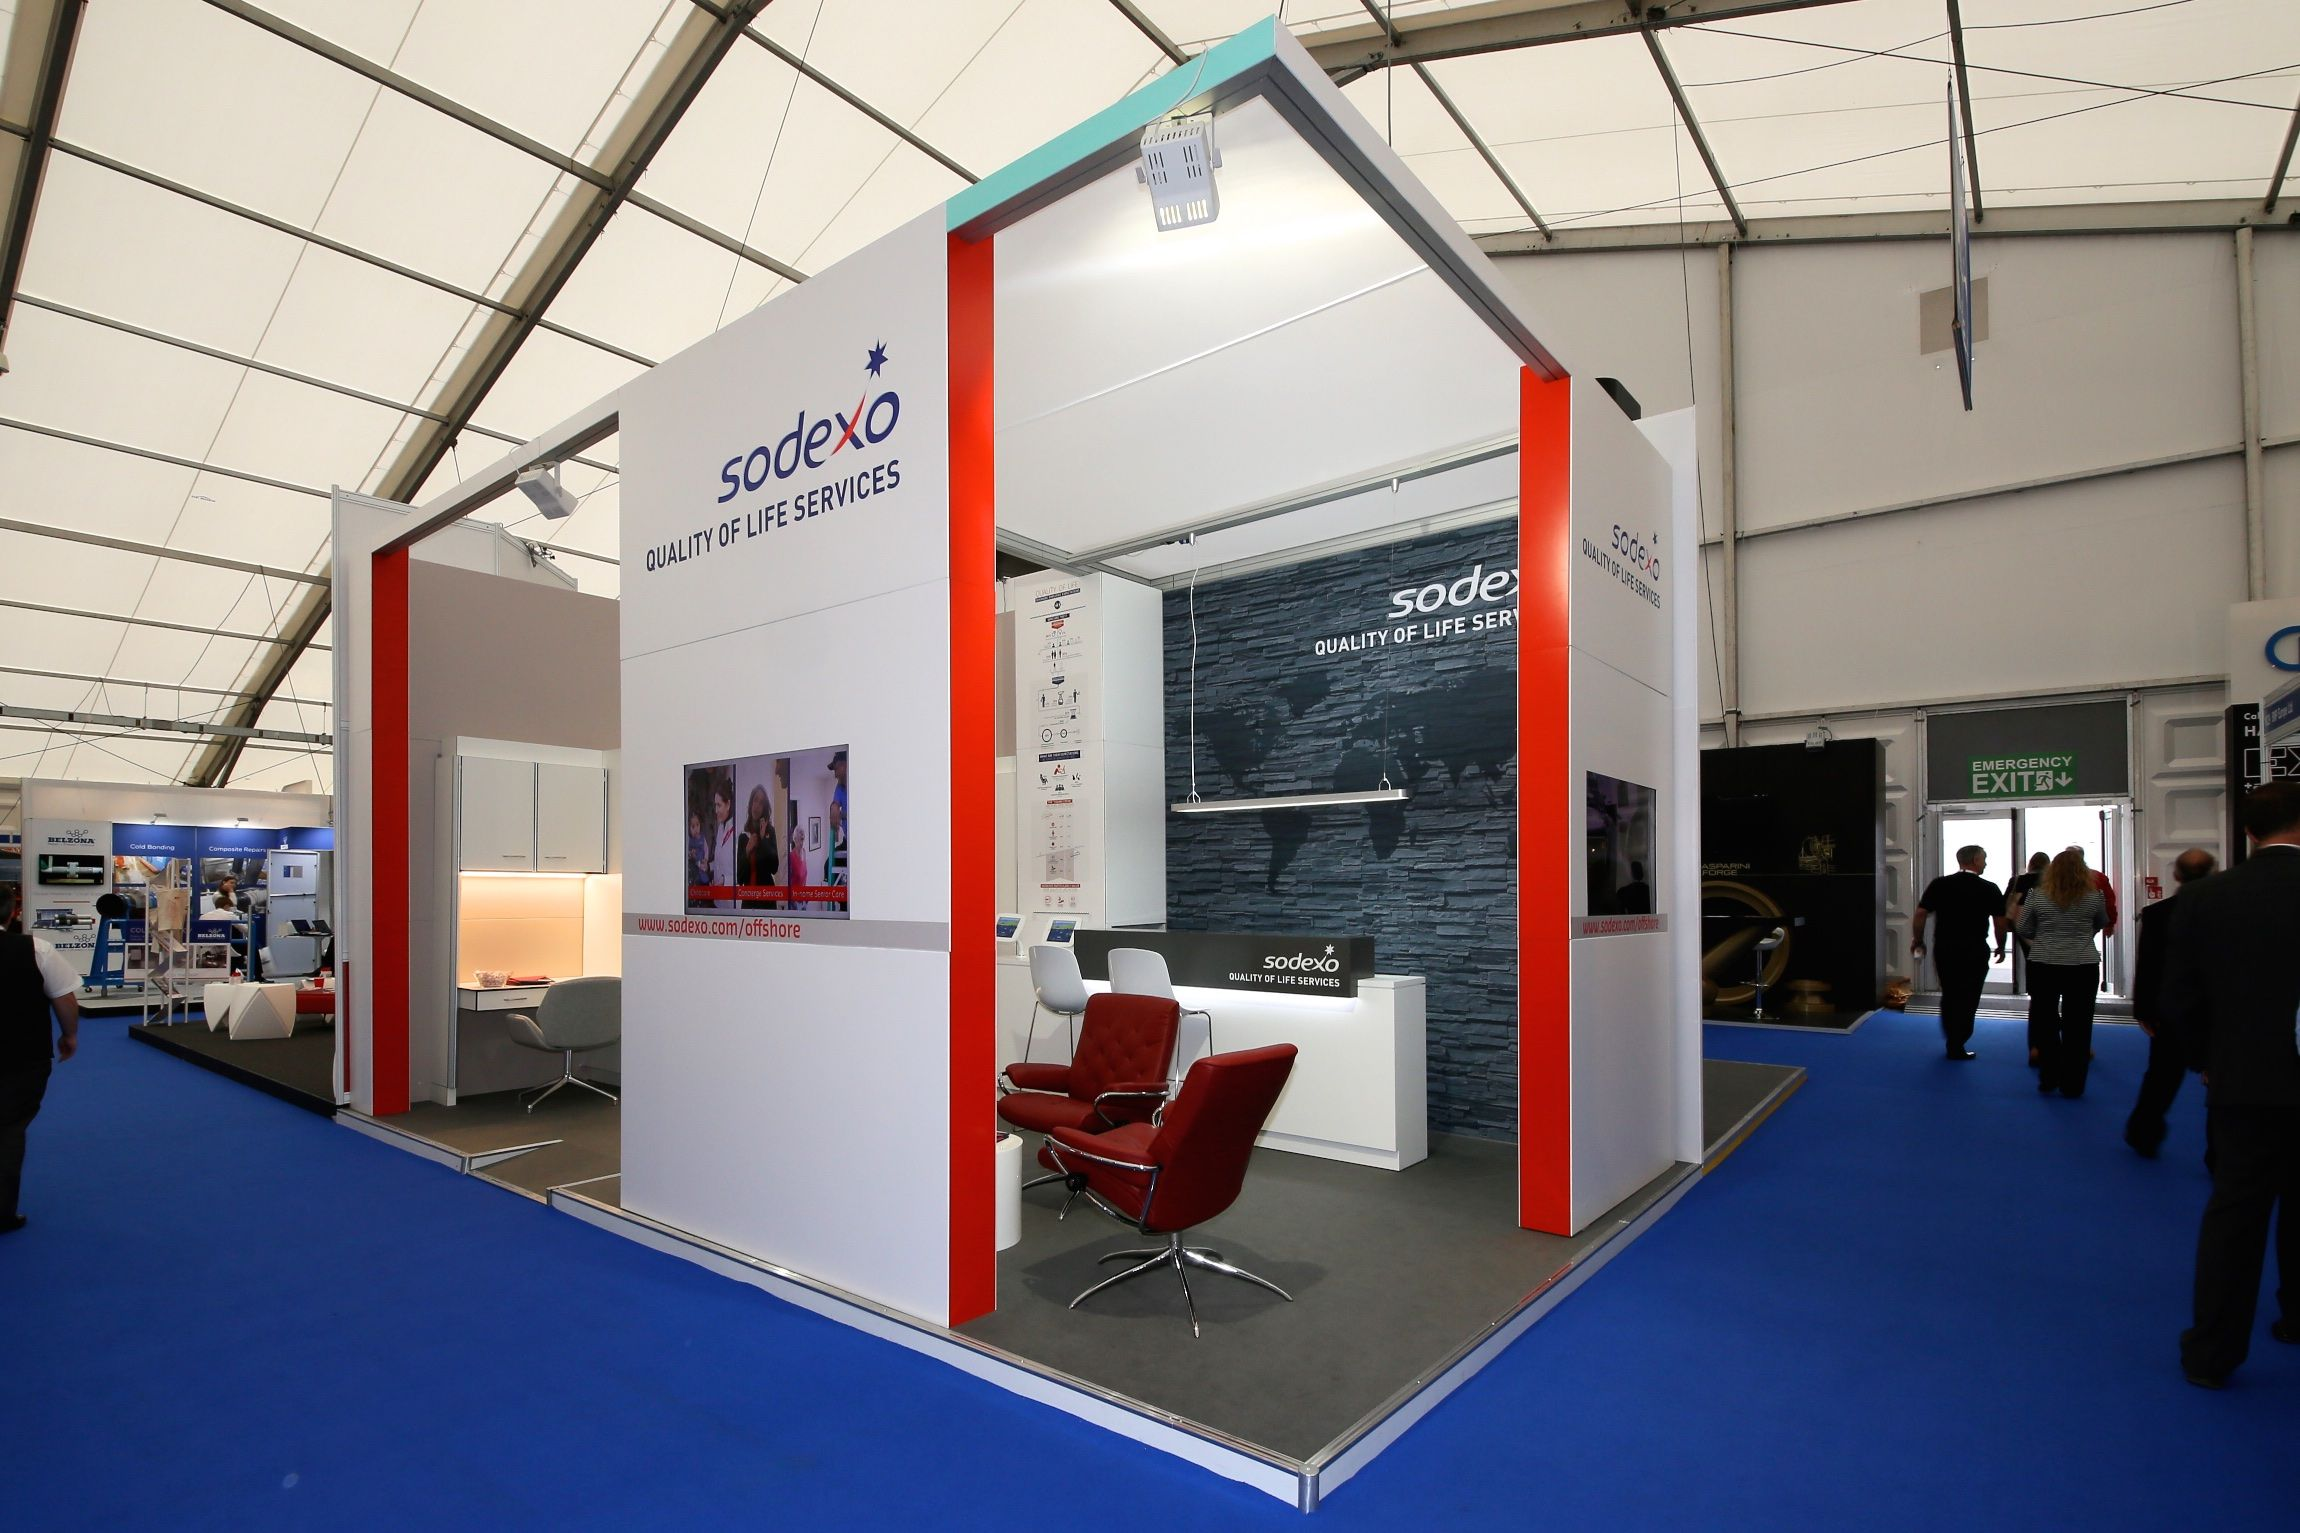 Sodexo Remote Sites Exhibition Stand At SPE Offshore Europe 2015